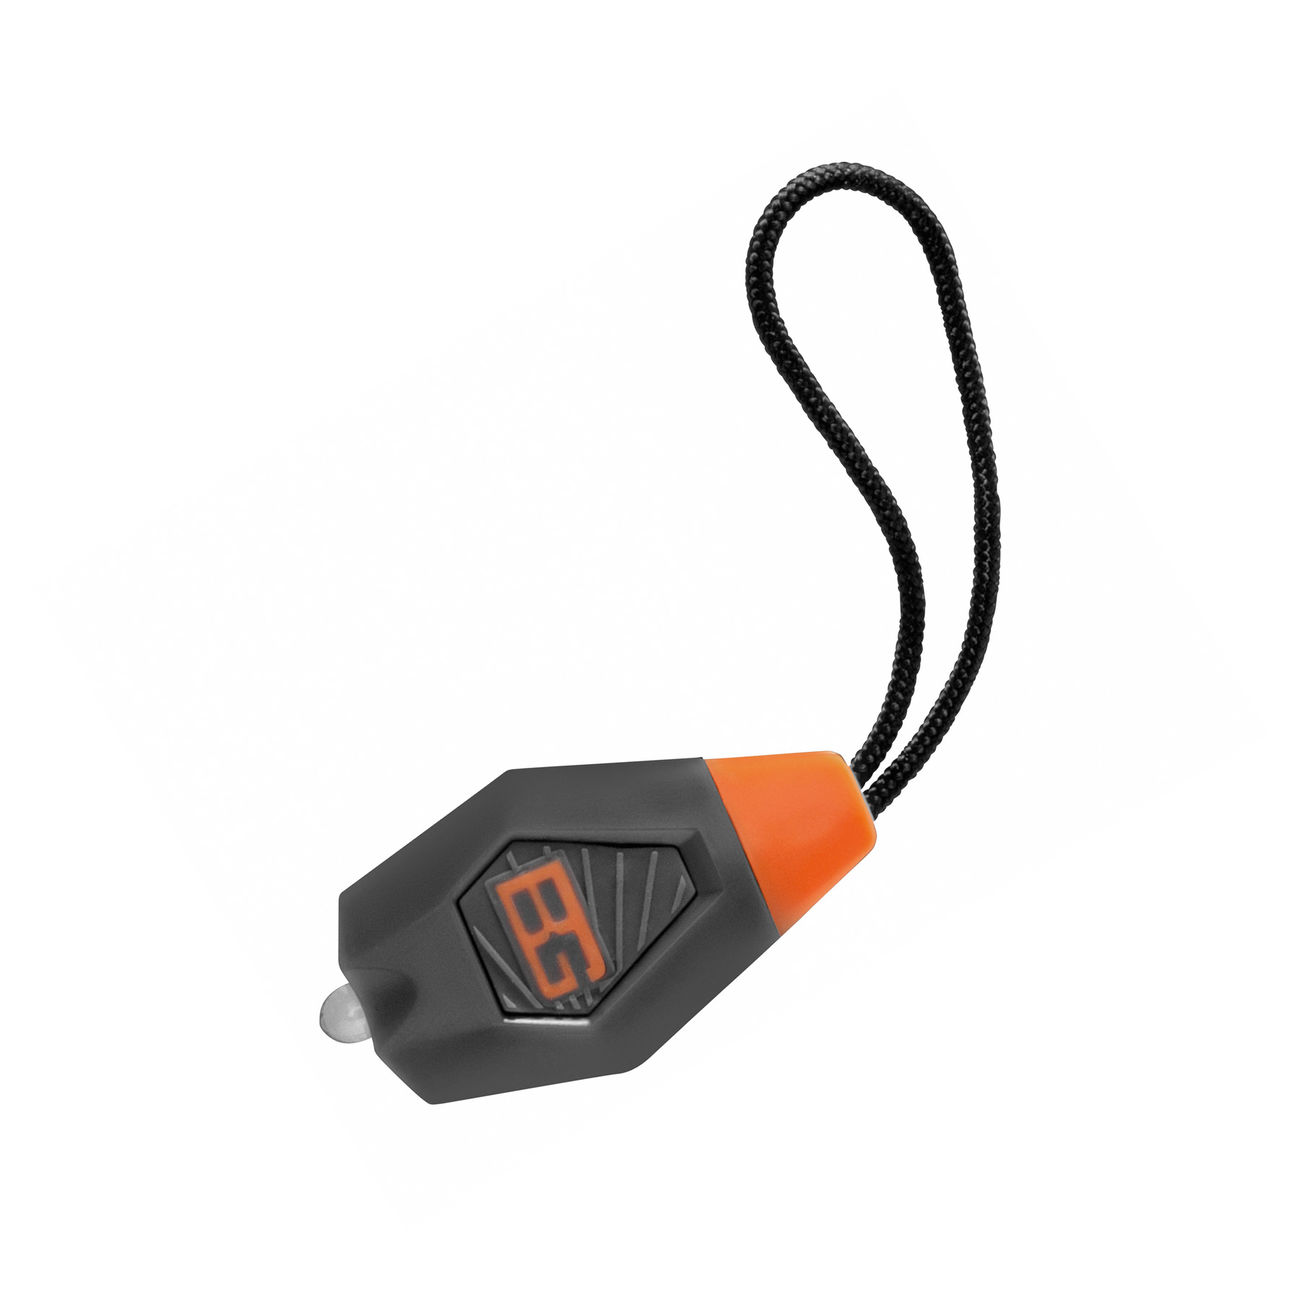 Bear Grylls Mini LED Lämpchen Micro Torch 8 Lumen 0